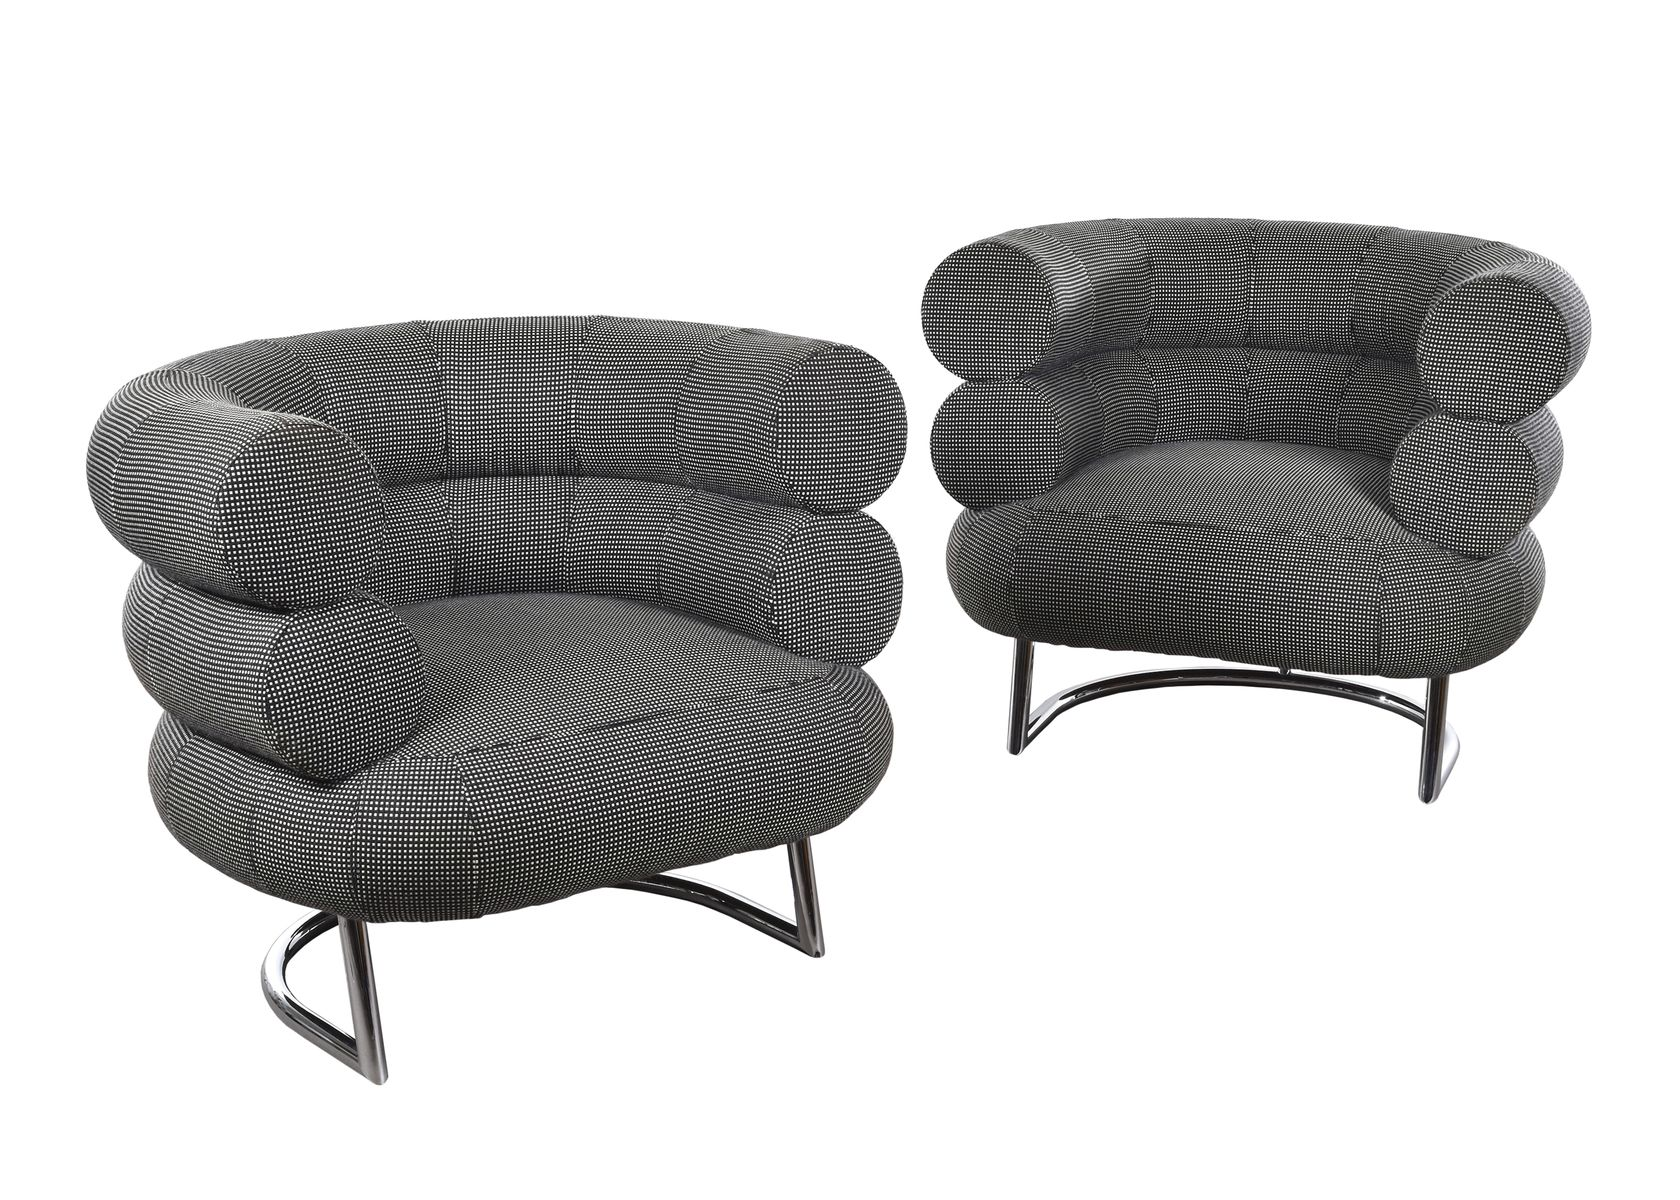 bibendum club chair by eileen gray for classicon for sale at pamono. Black Bedroom Furniture Sets. Home Design Ideas